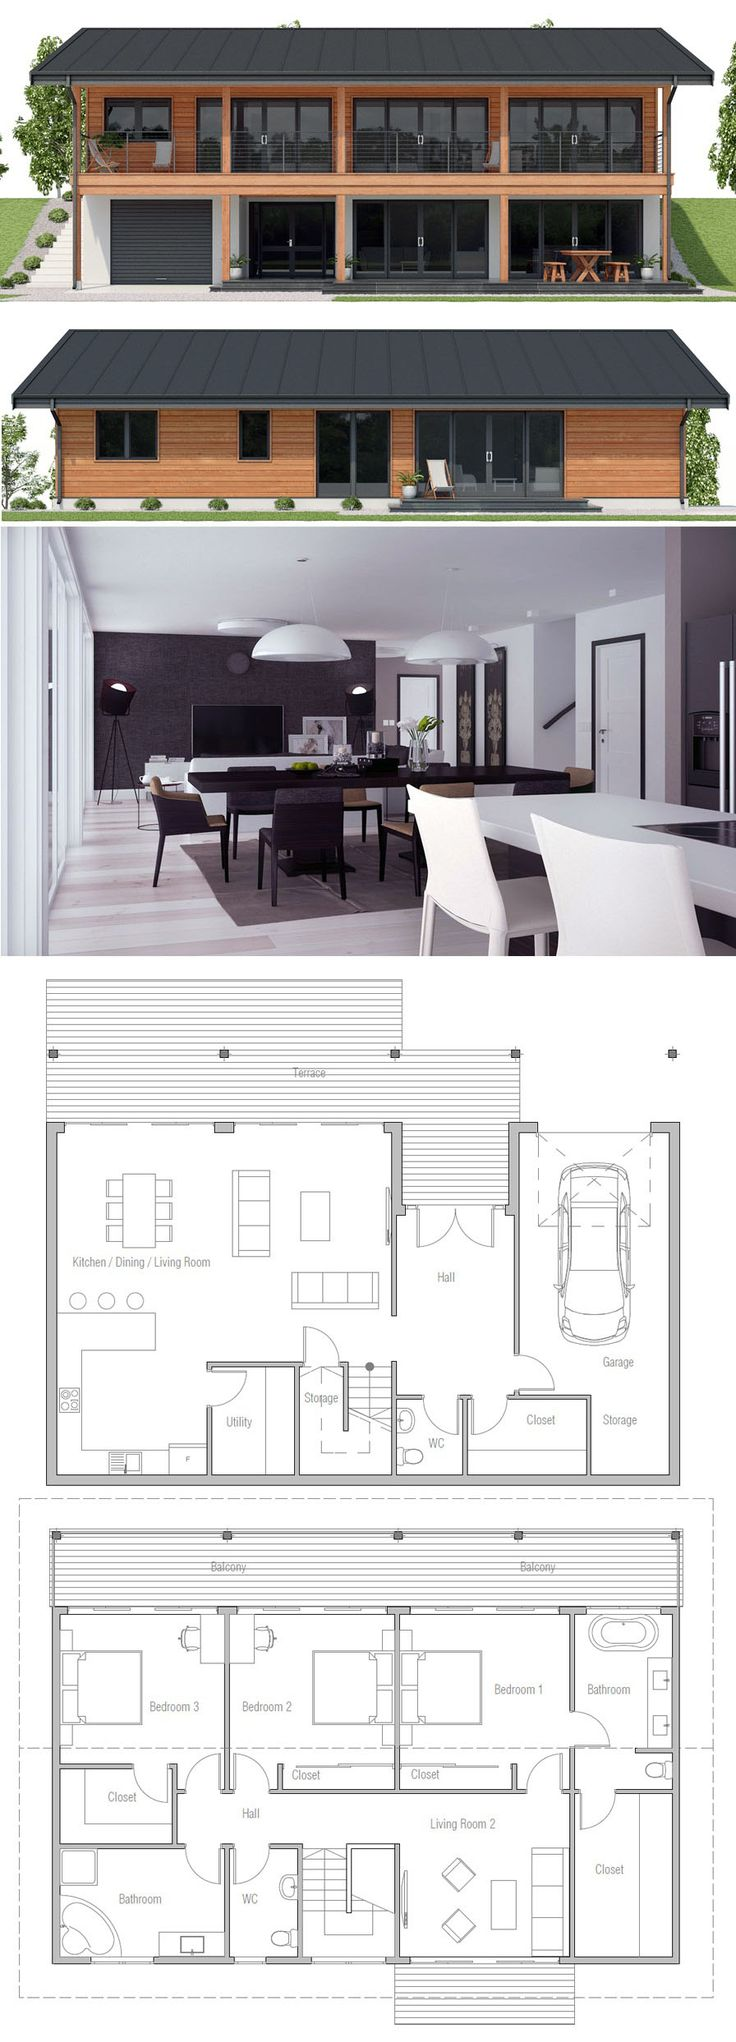 House plan 964 best House plan images